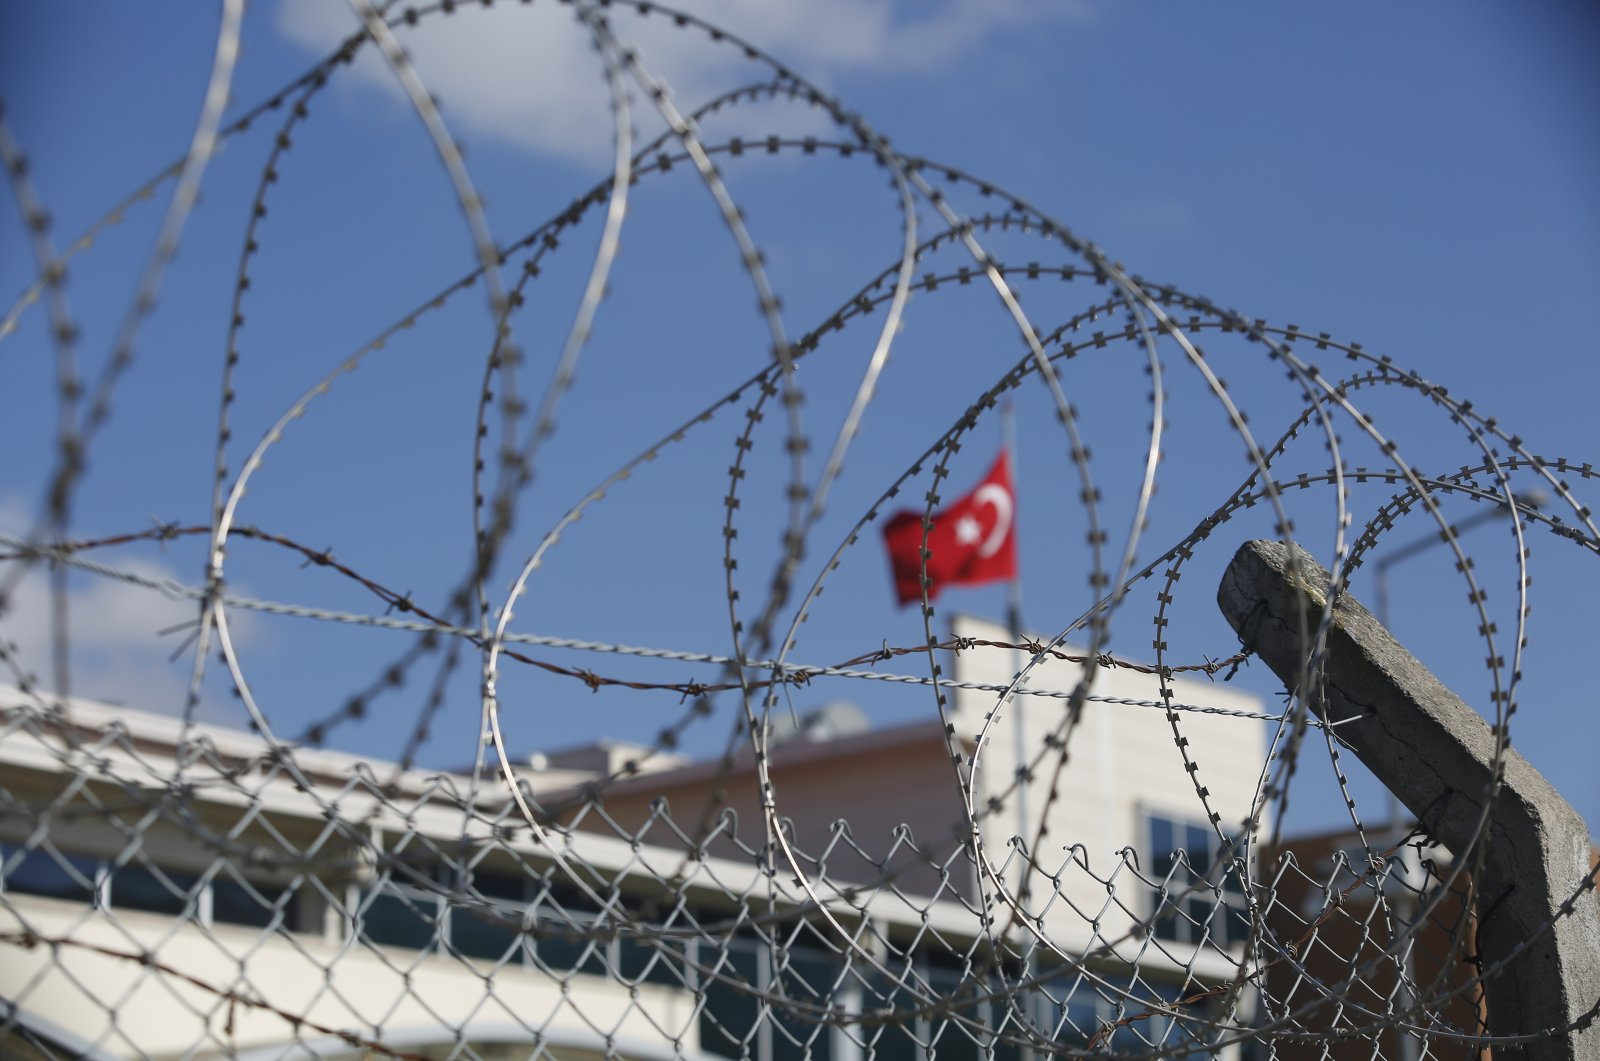 A Turkish flag behind the barbed-wire fence of the Silivri courthouse, in Silivri, outside Istanbul, Turkey, before the trial of Abdulkadir Masharipov,the main suspect in an attack that left 39 people dead at an Istanbul nightclub in 2017, Sept. 7, 2020. (AP Photo)